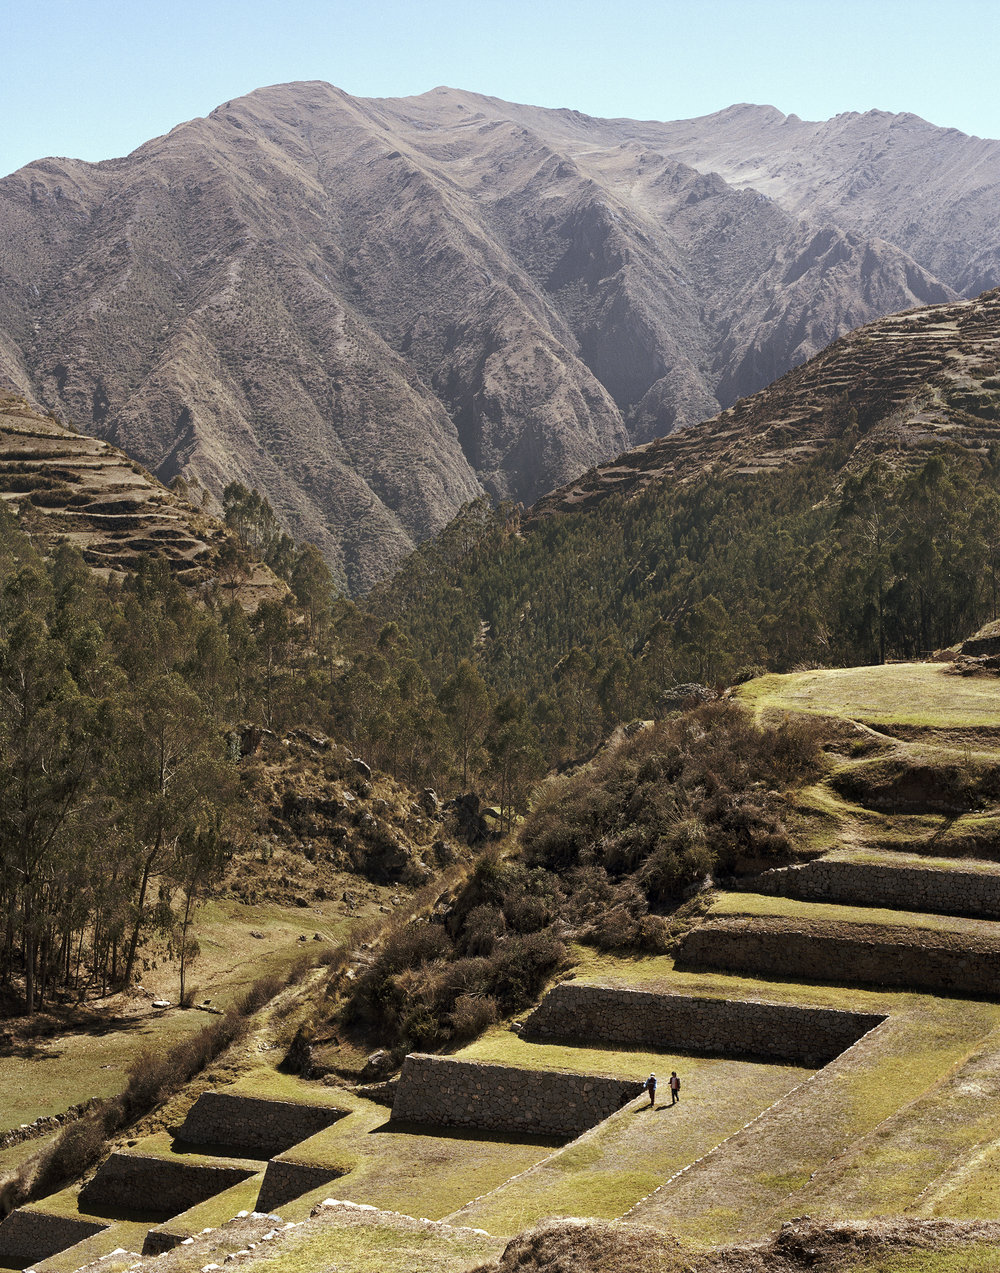 Cuzco, Peru: - A Boom Town Machu Picchu BuiltTravel & LeisureStory by Andrew McCarthy